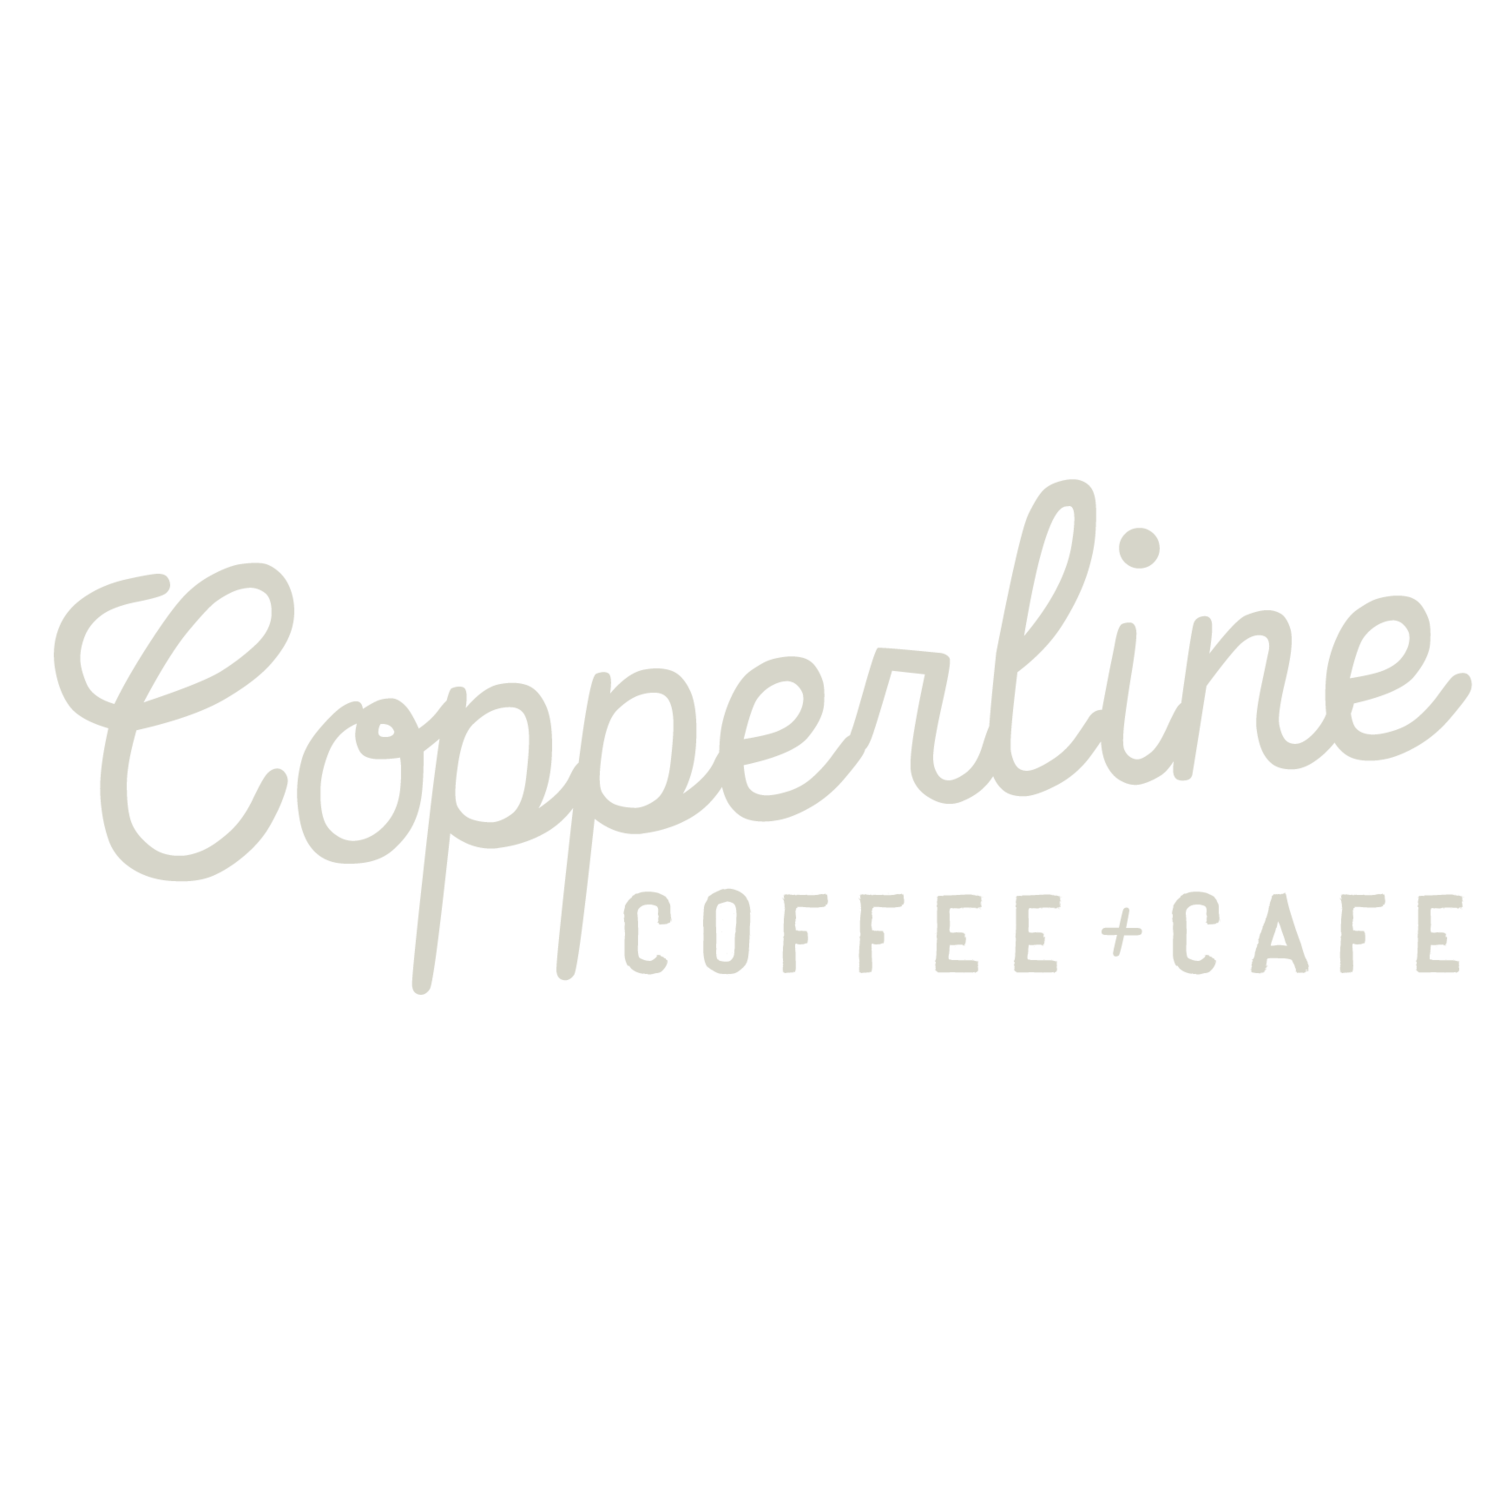 Copperline coffee + cafe